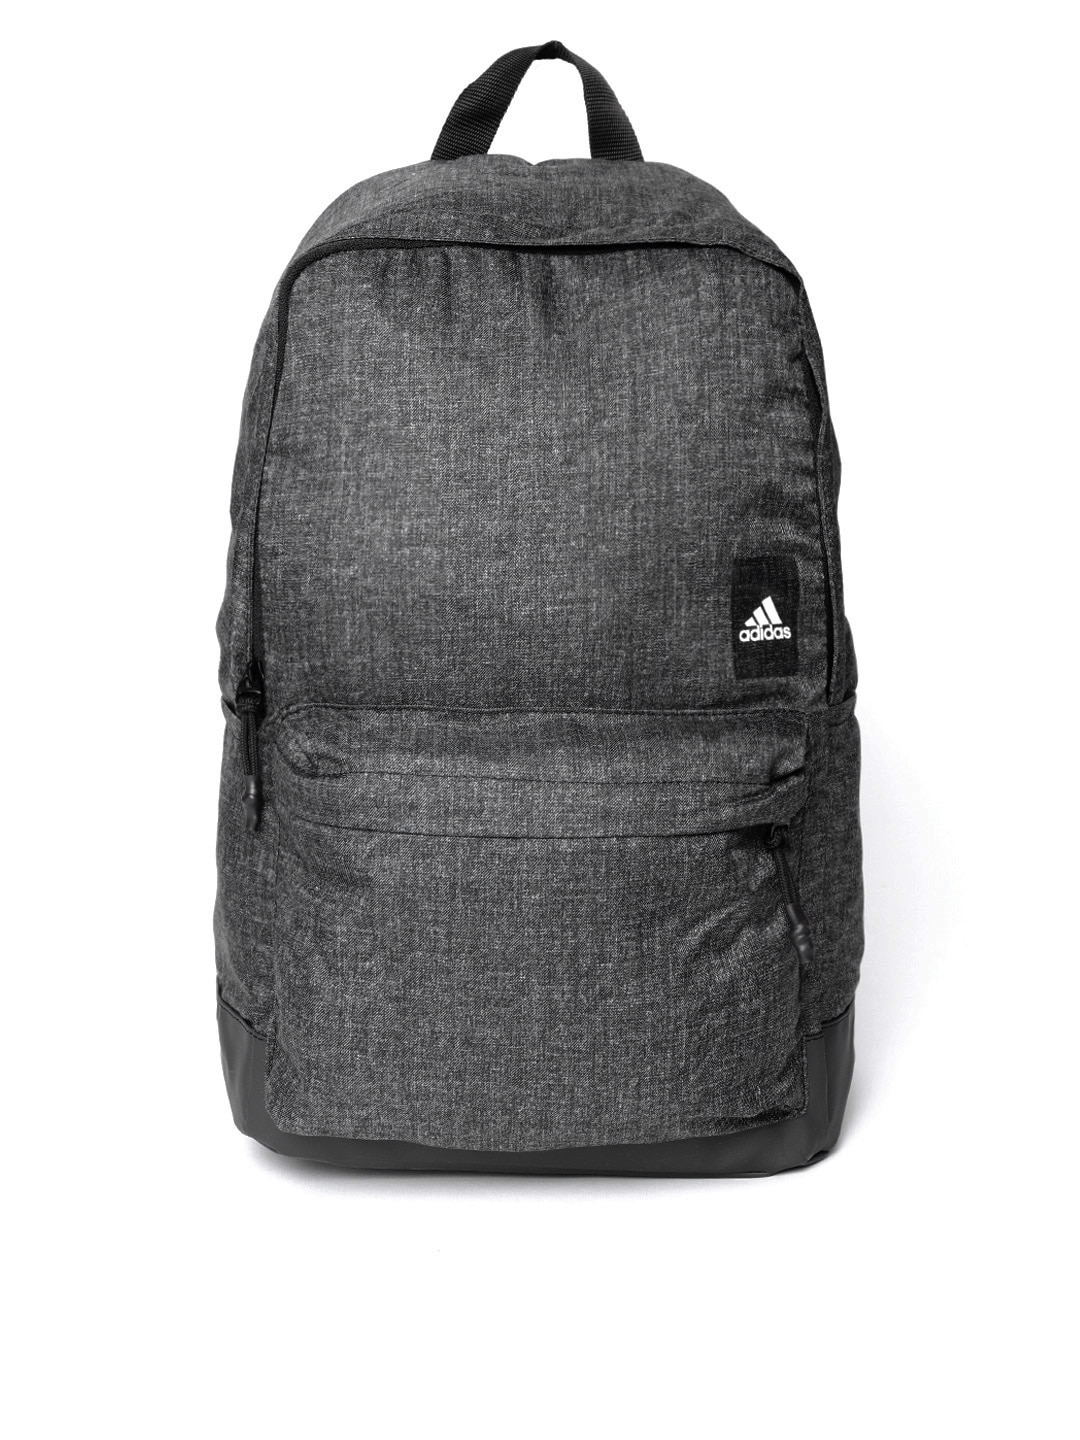 b59015c09972 Women Boys Girls Backpacks - Buy Women Boys Girls Backpacks online in India